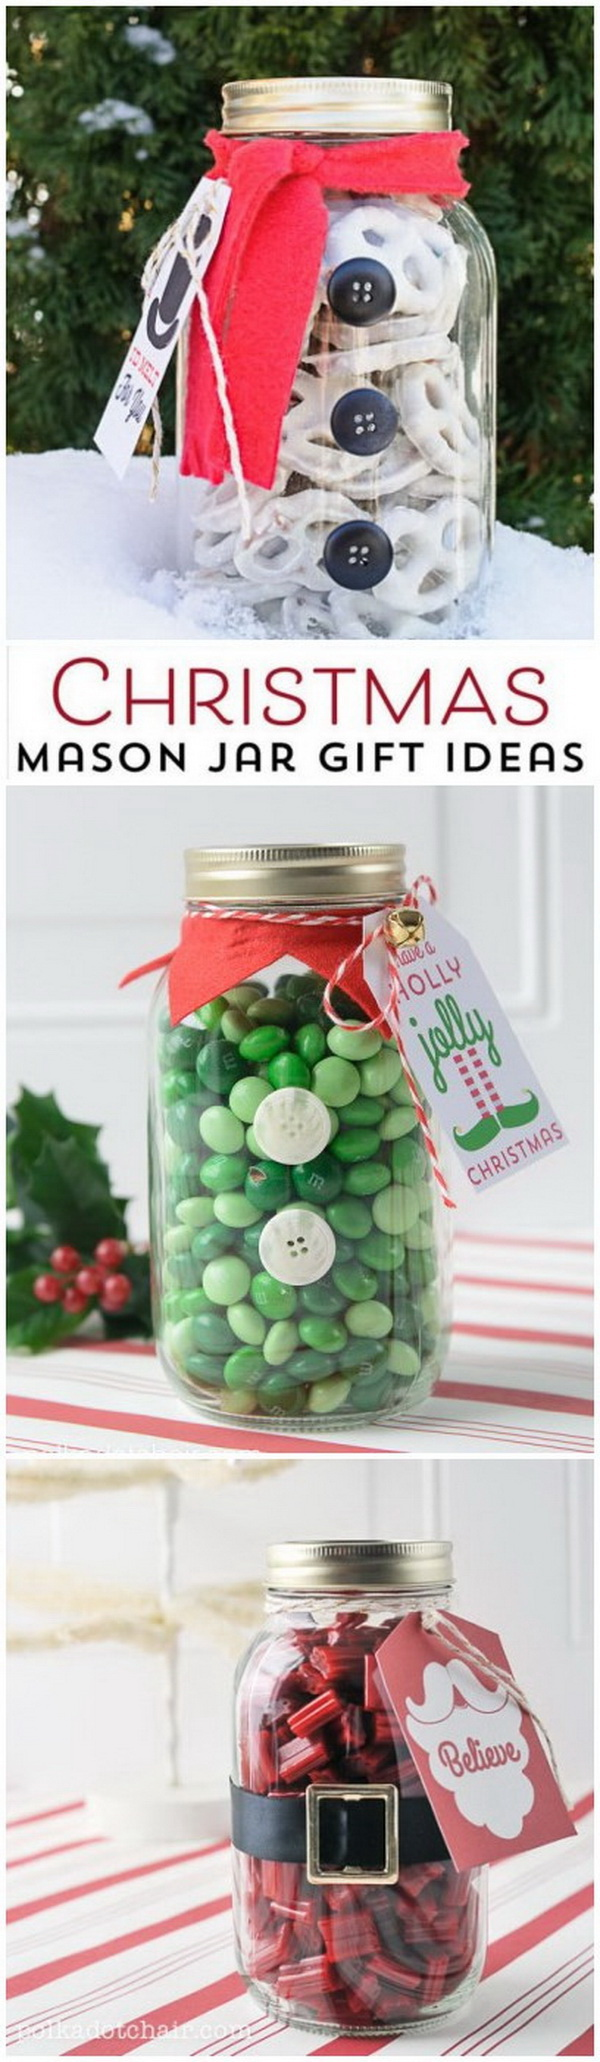 30 Homemade Christmas Gifts Everyone Will Love For Creative Juice